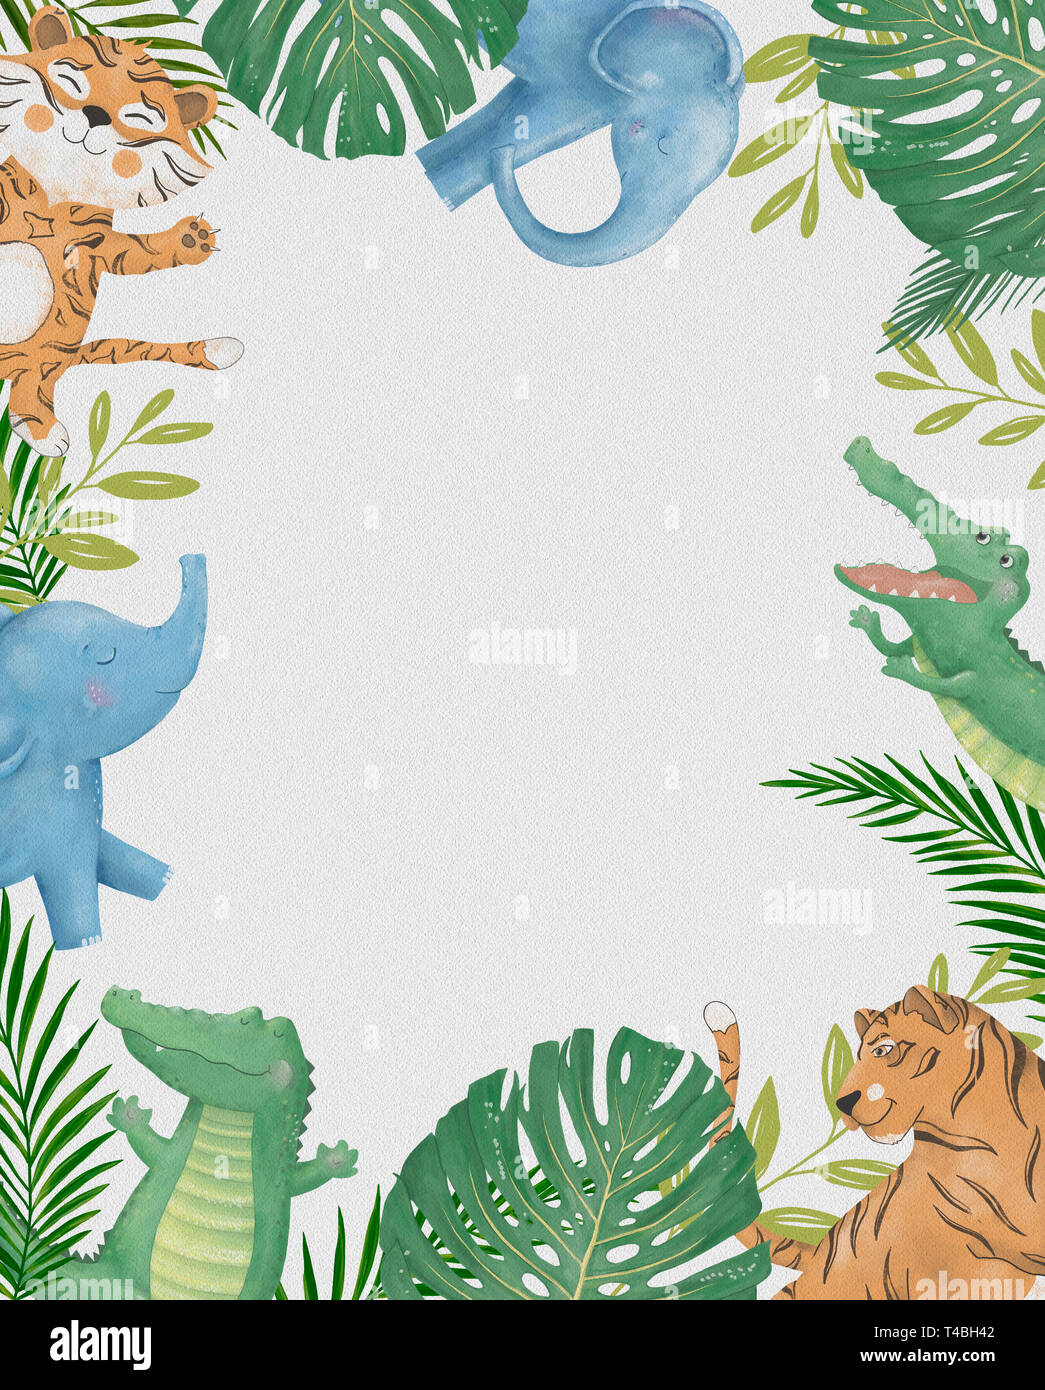 Cute Safari Cartoon Animals Border With Cloud Shaped Copy Space For